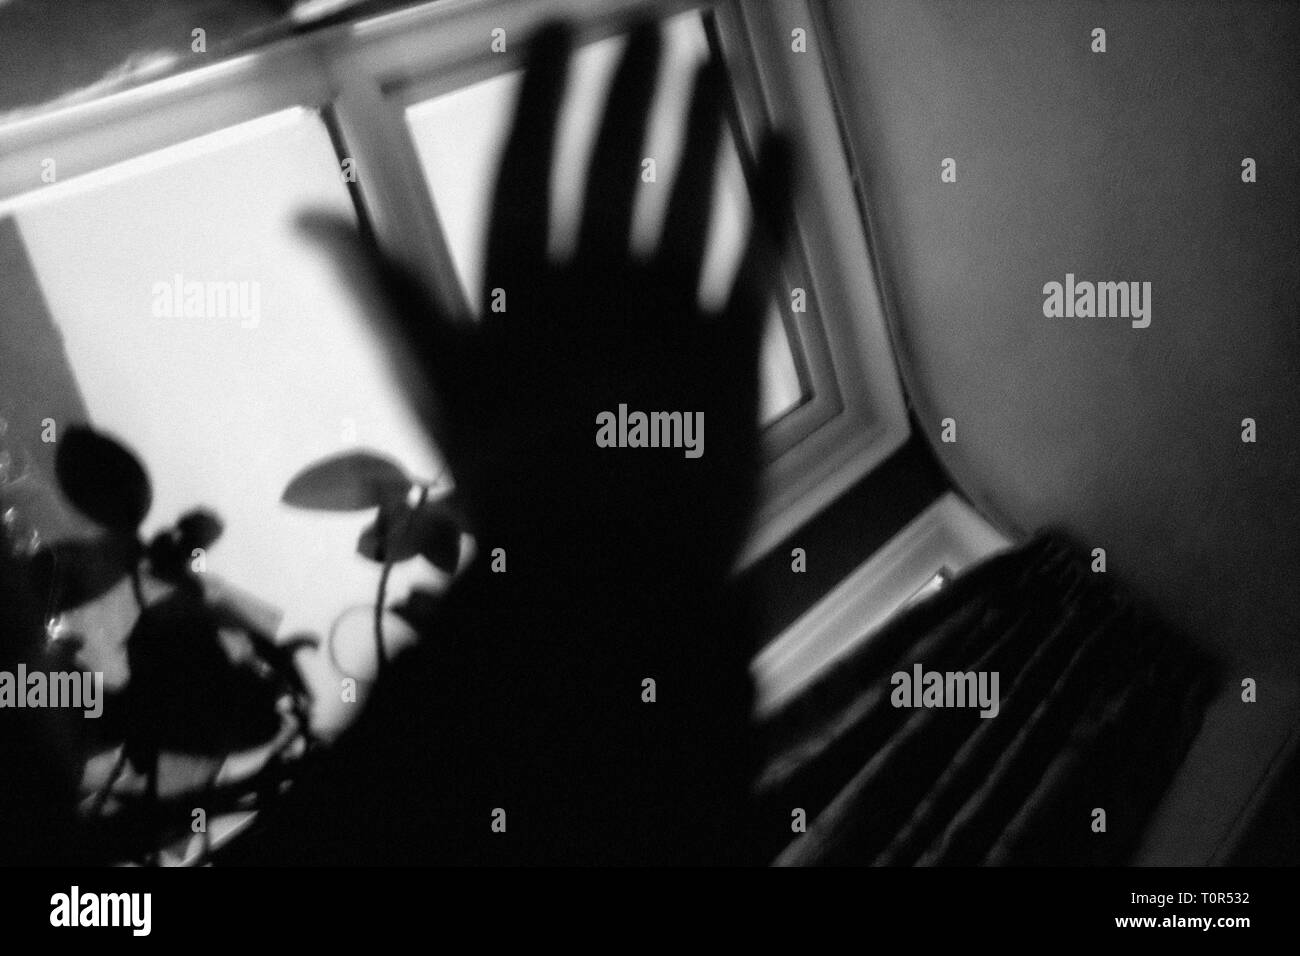 Hand,poised,to,slap,hit,punch,strike,defend,fight,guard,prevent,resist,avert,dispare,suicide,for,belt,impact,smash,spank,swipe,swat,wallop,punish,disc - Stock Image